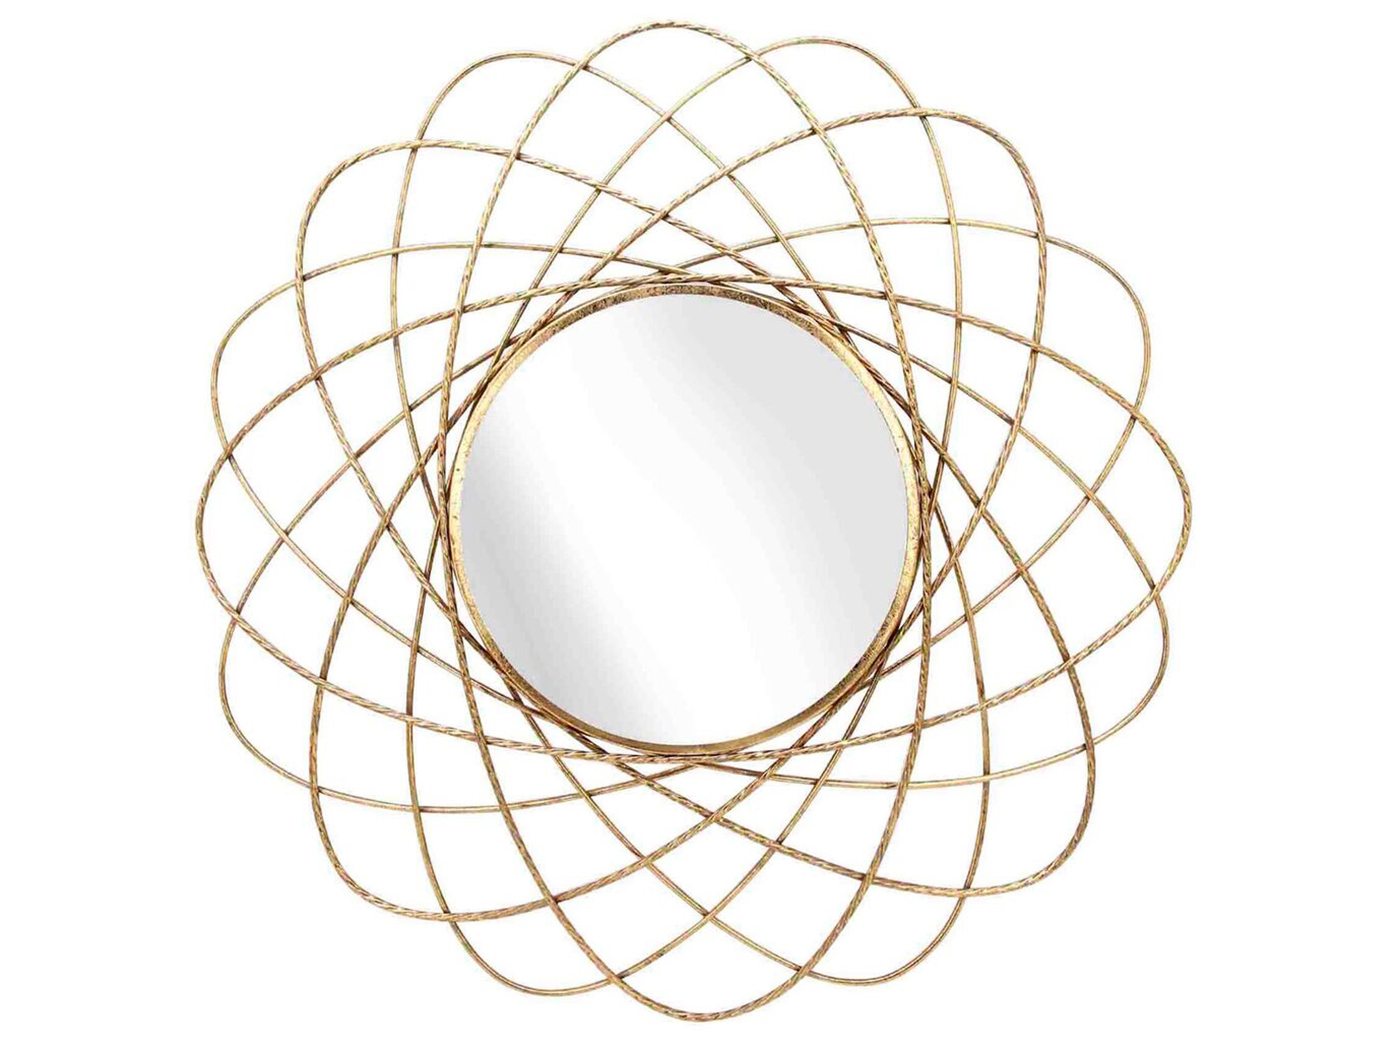 Gold Metal Orbit Wall Mirror 36""